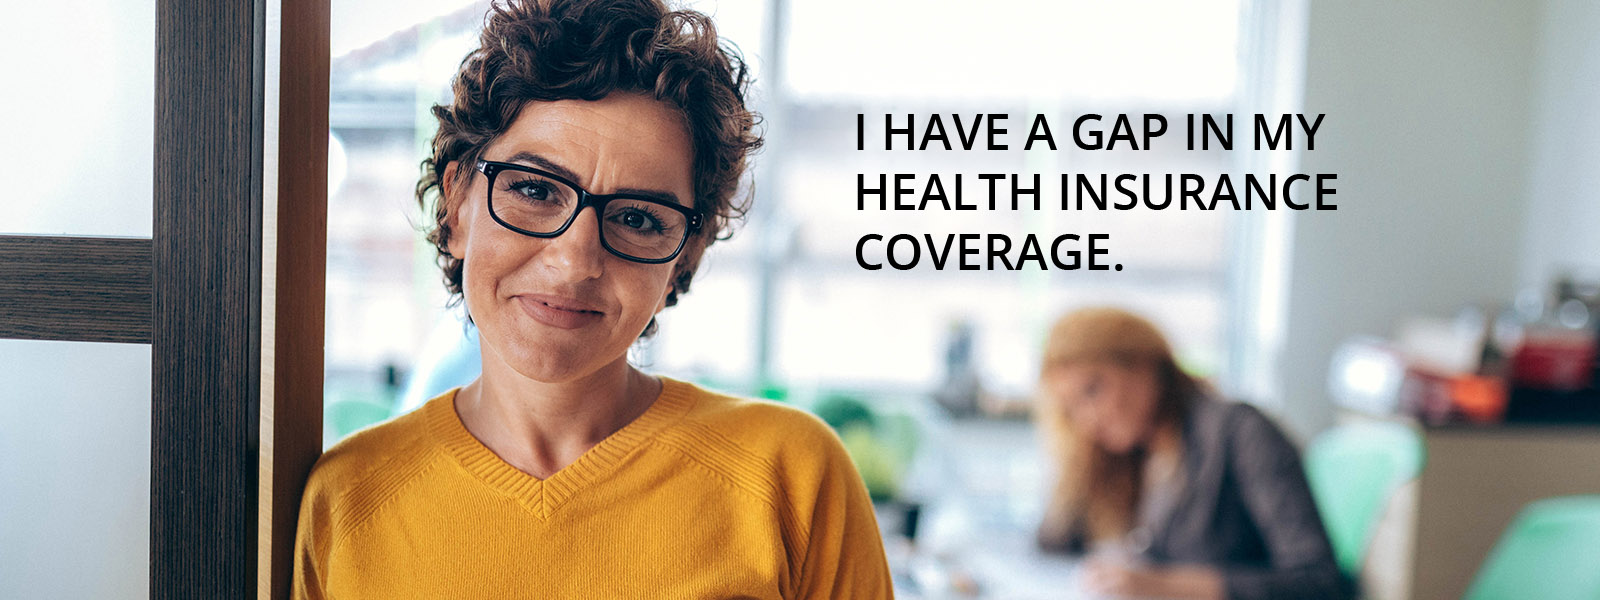 I have a gap in my health insurance coverage.